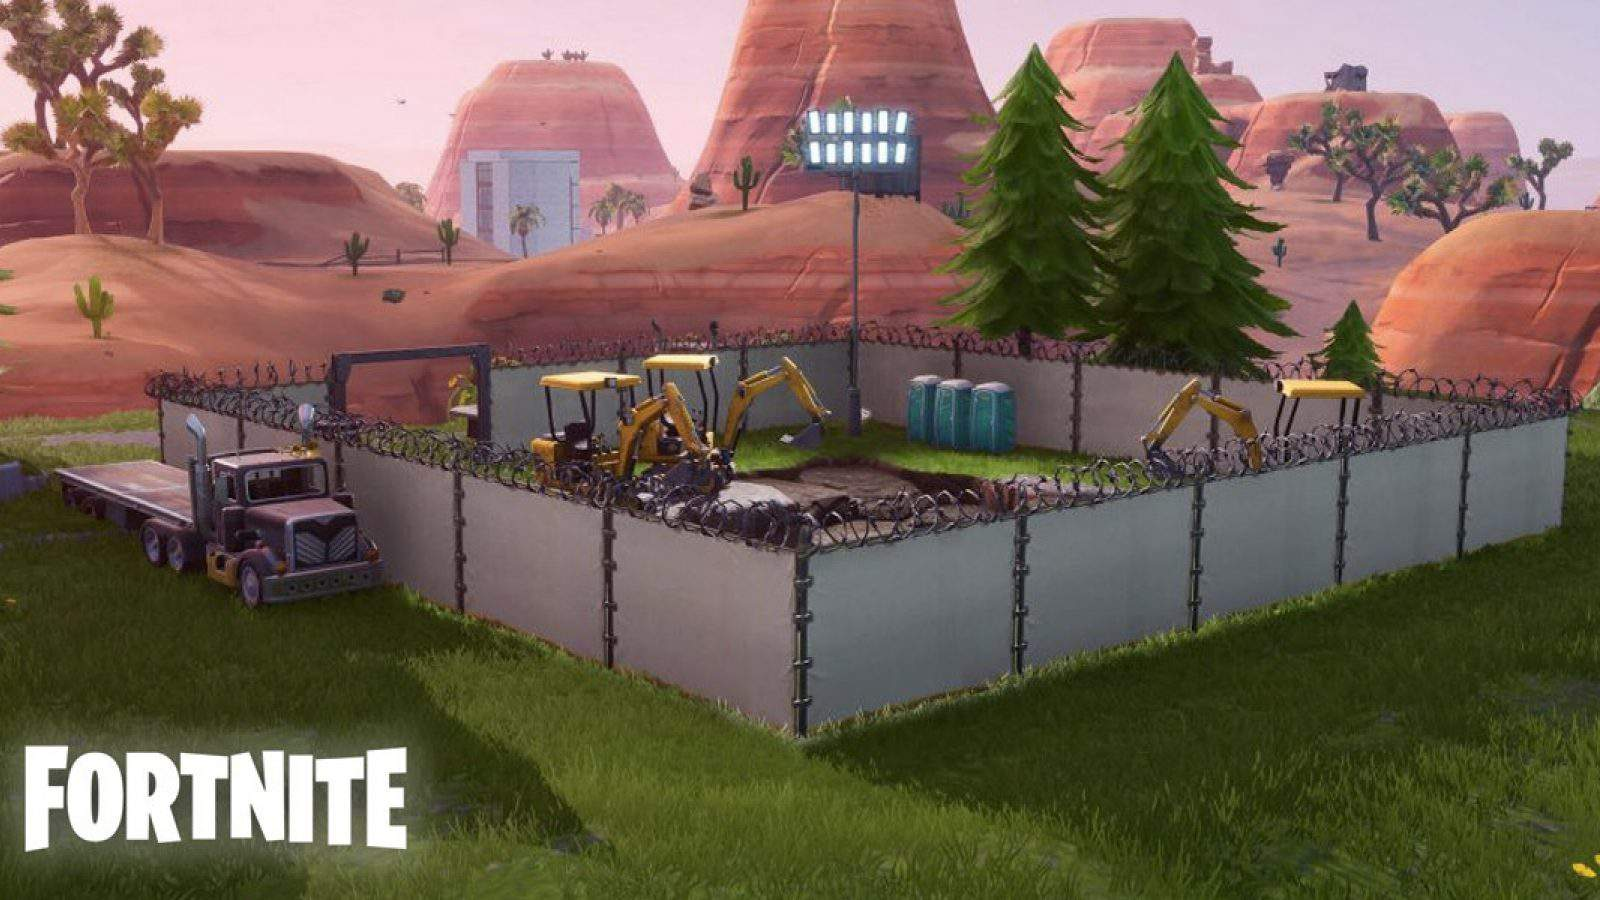 More Fortnite map changes coming following Dusty Divot dig